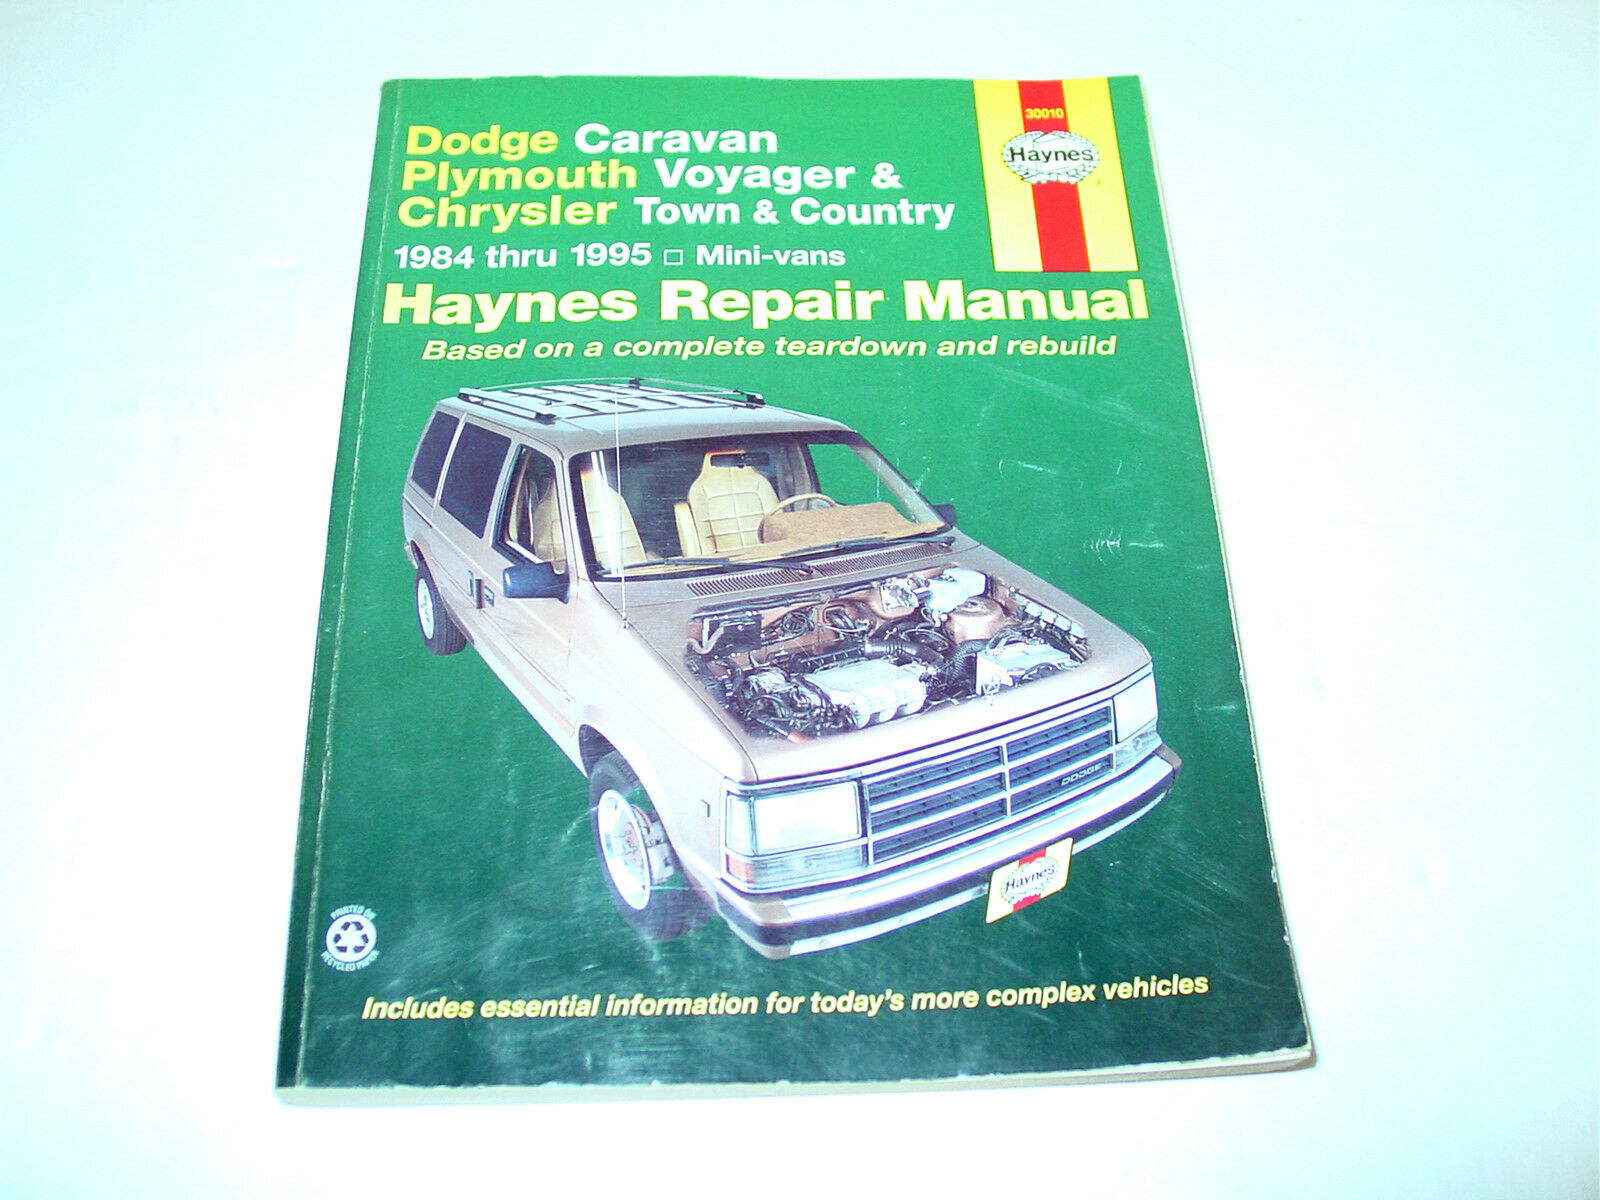 Haynes Repair Manual Dodge Caravan Plymouth Voyager, Chrysler Town Country  84-95 1 of 1Only 1 available ...